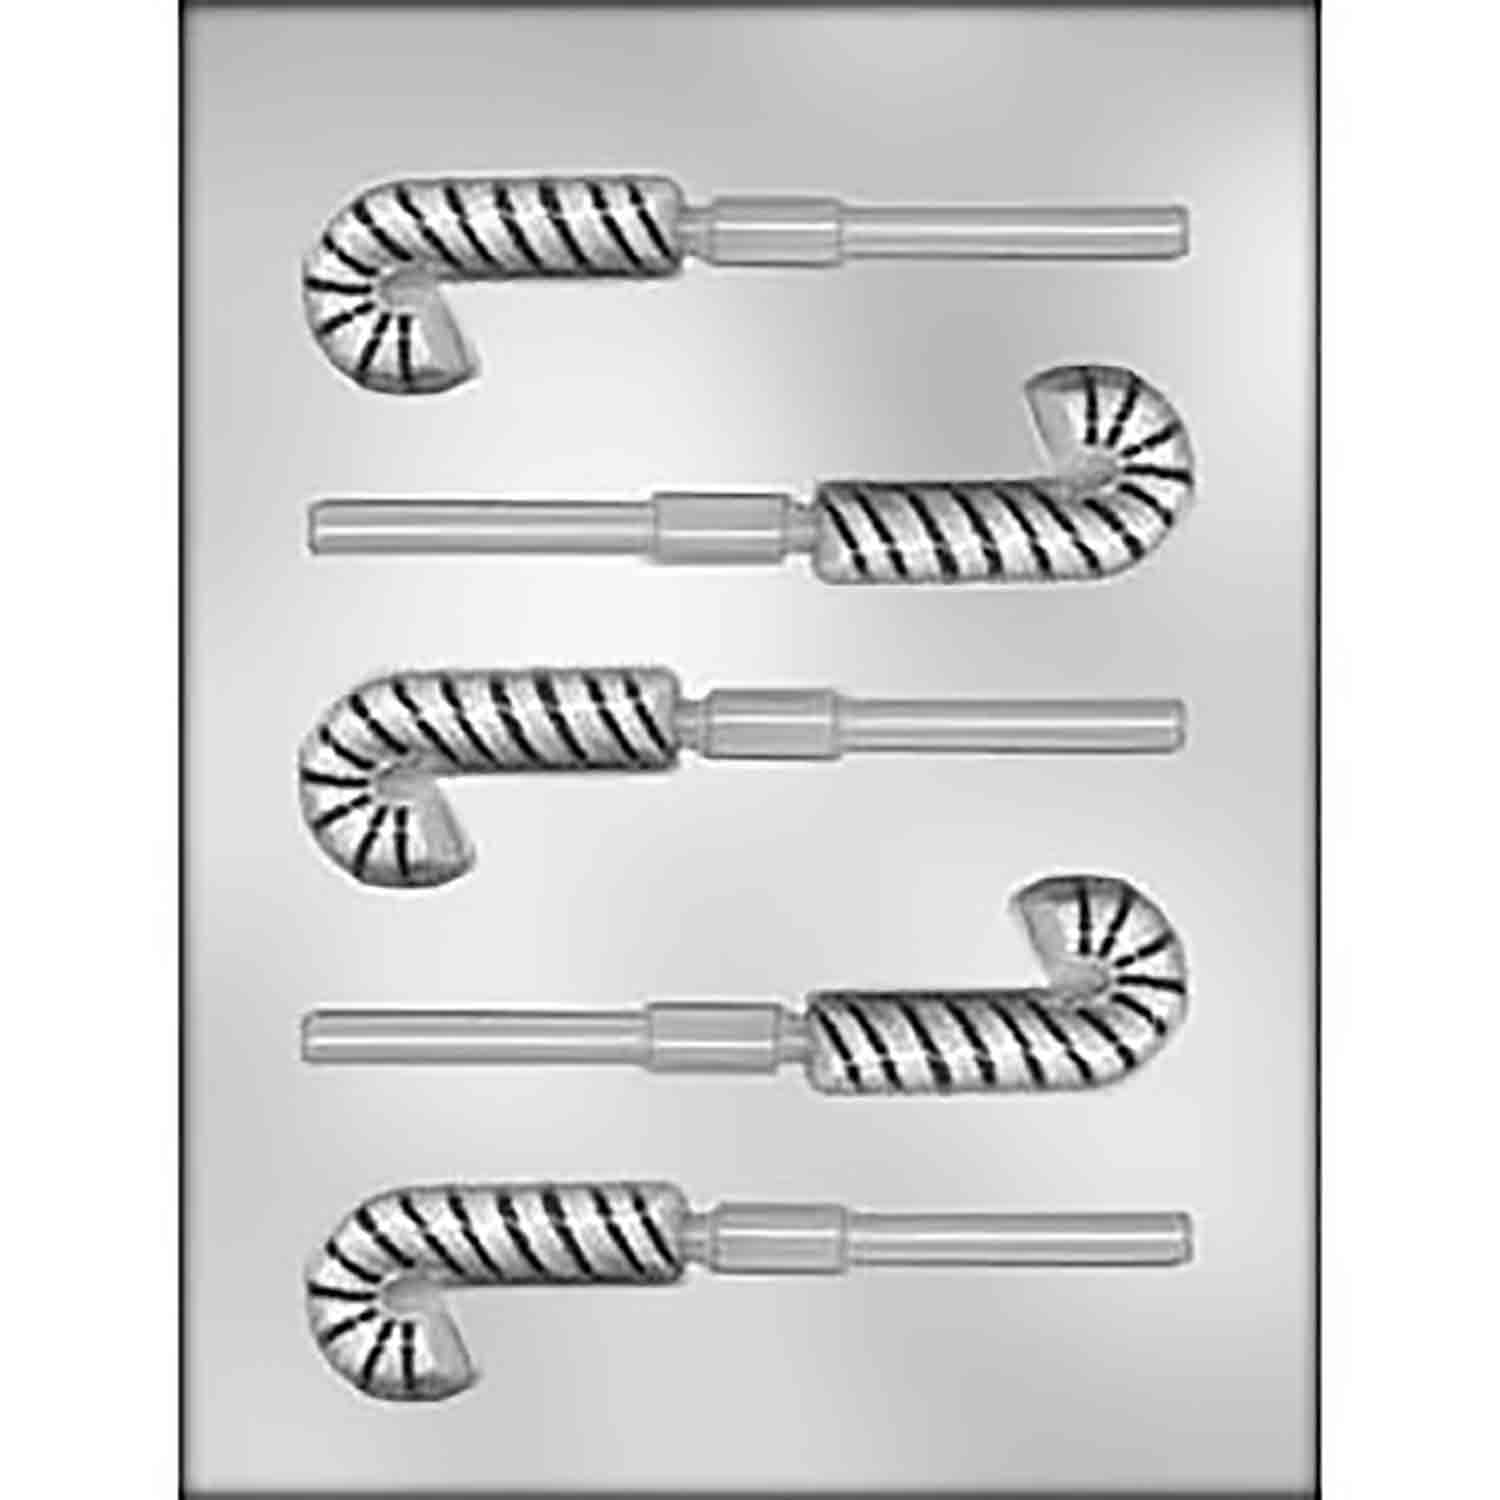 Candy Cane Sucker Chocolate Candy Mold